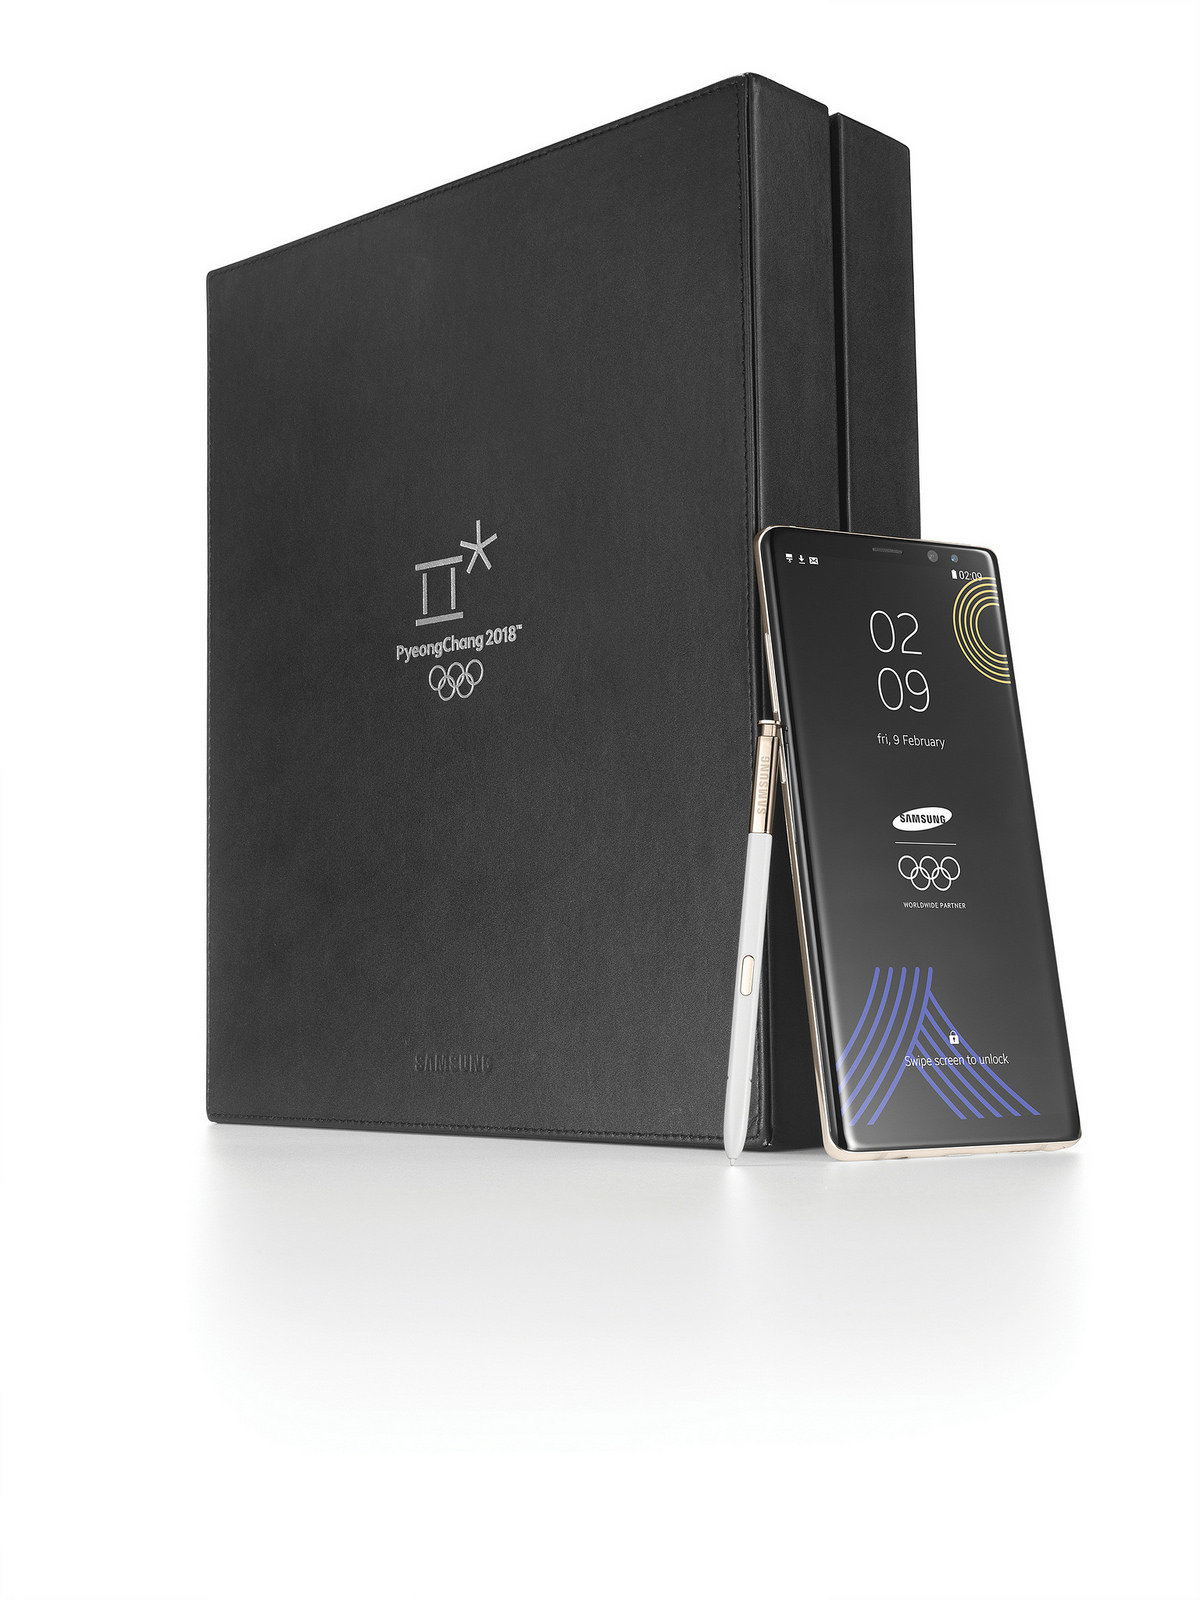 Samsung、Galaxy Note8 Olympic Editionを公開